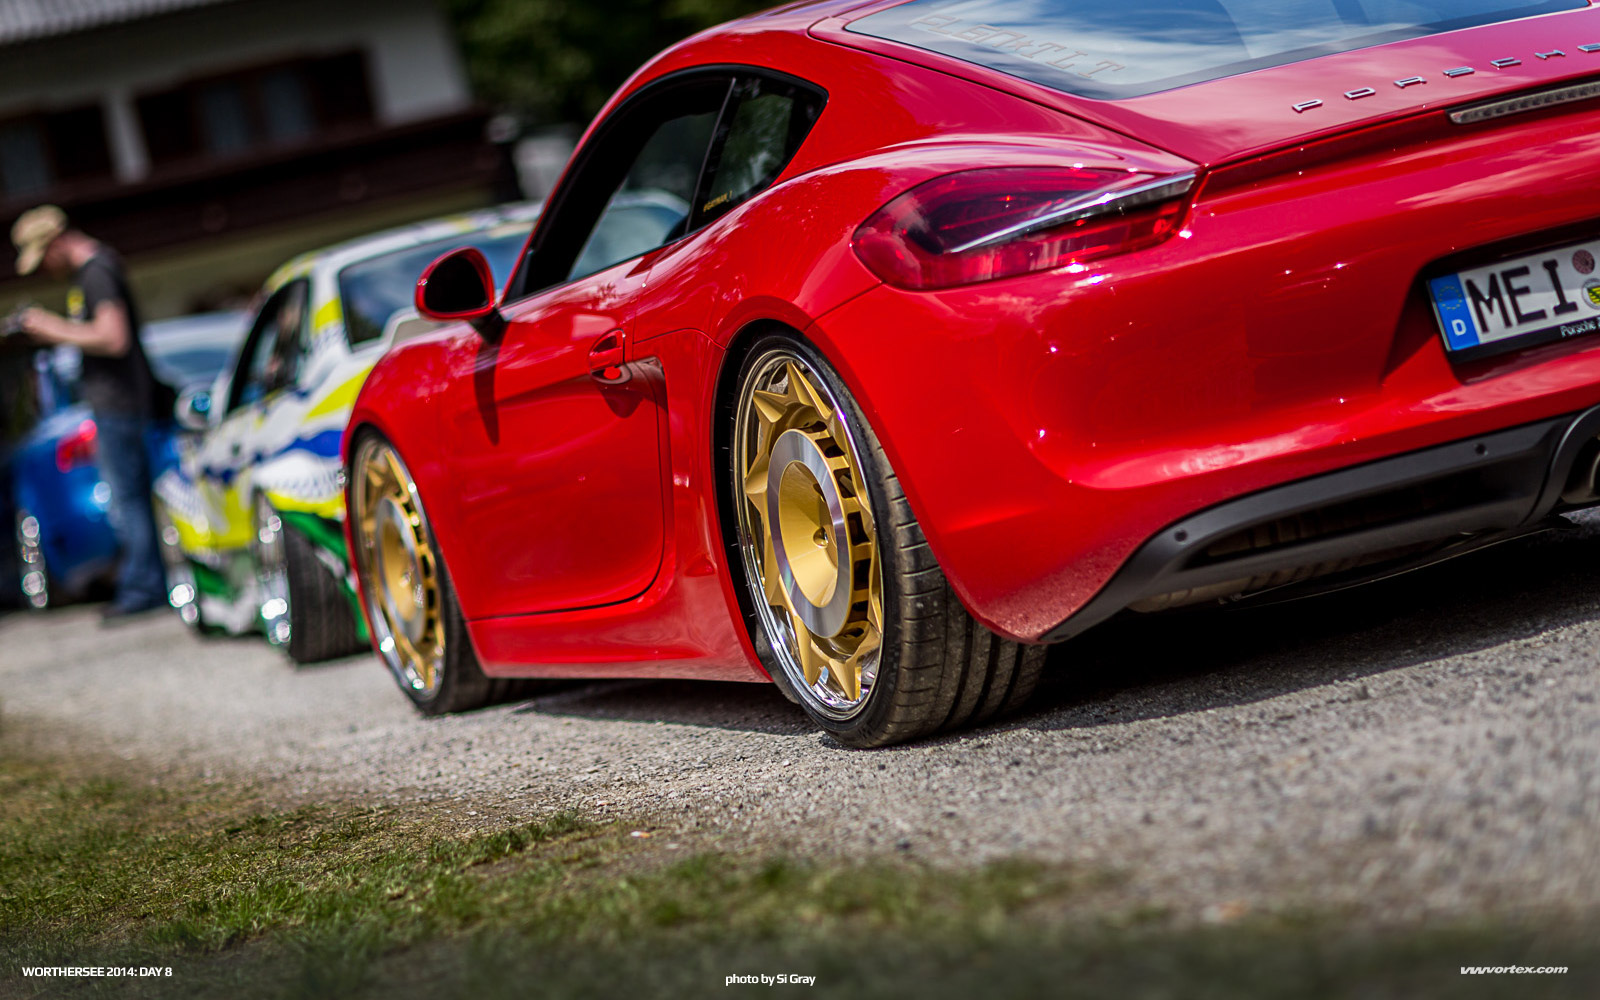 2014-Worthersee-Day-8-Si-Gray-1119